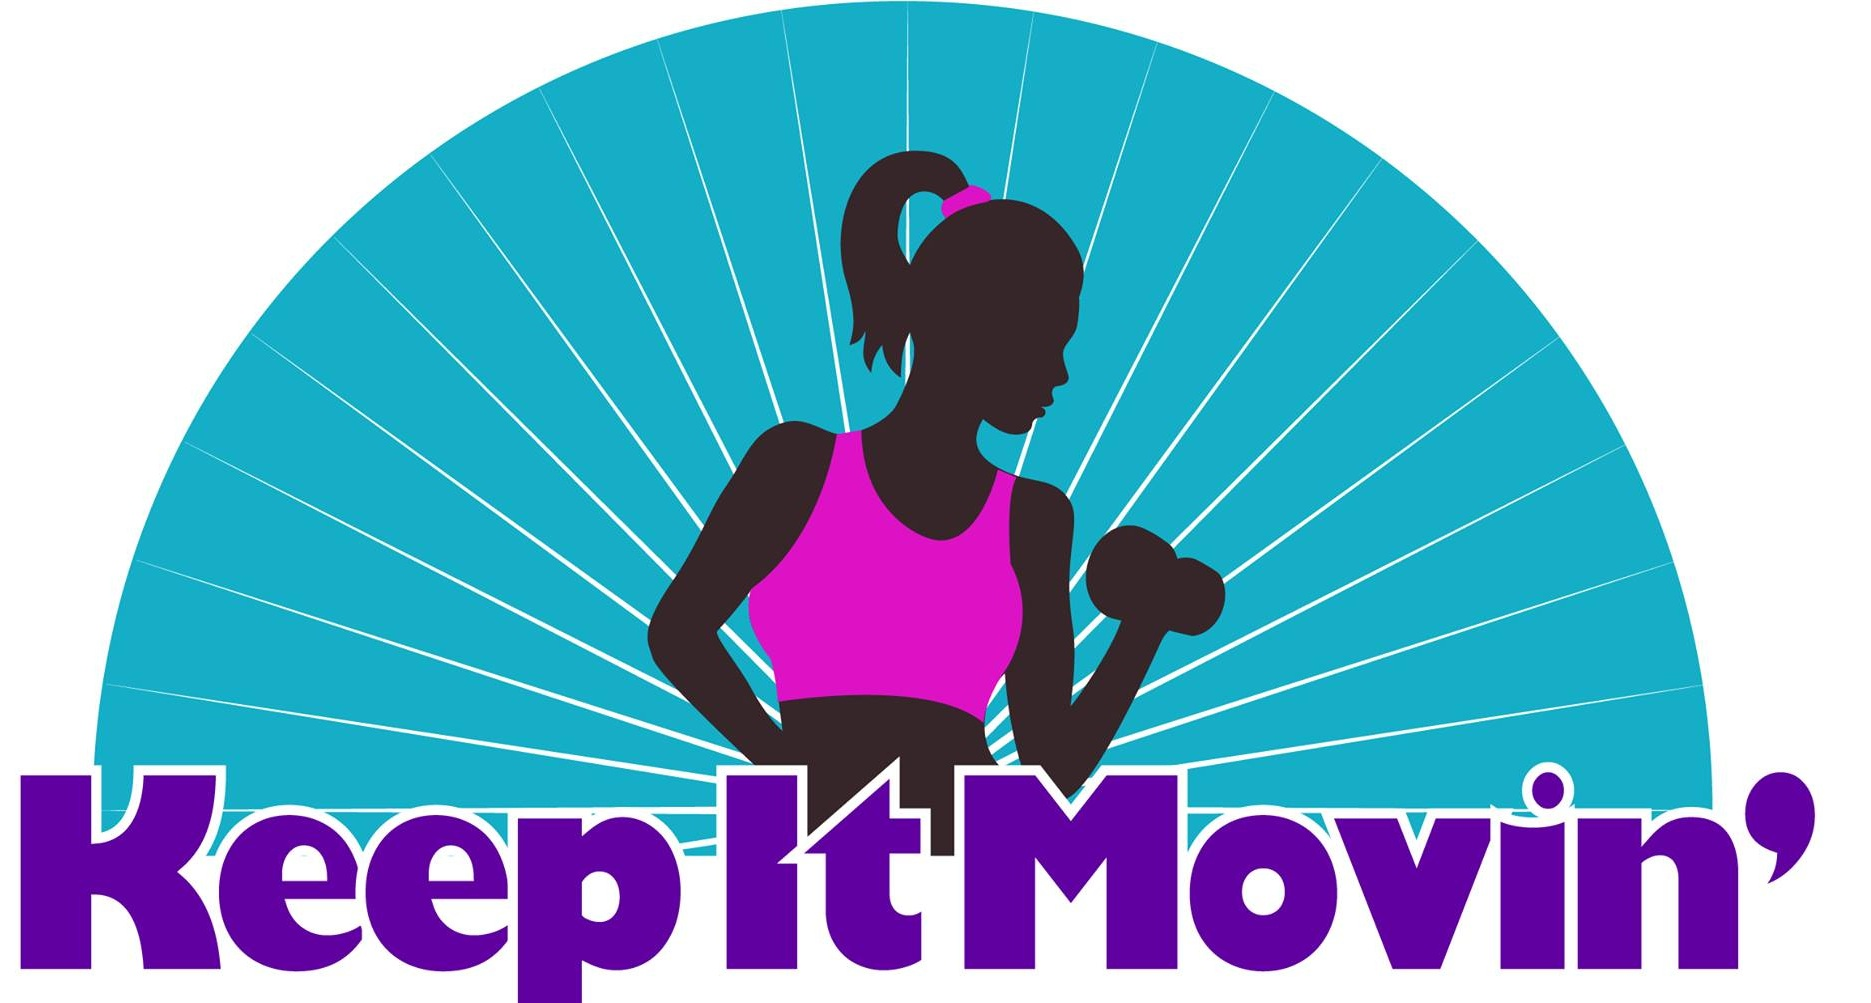 Coming Soon - Keep It Movin' is a fitness philosophy for women that uses the power of movement to enhance mental and physical well-being. Programming information coming soon to a screen near you.